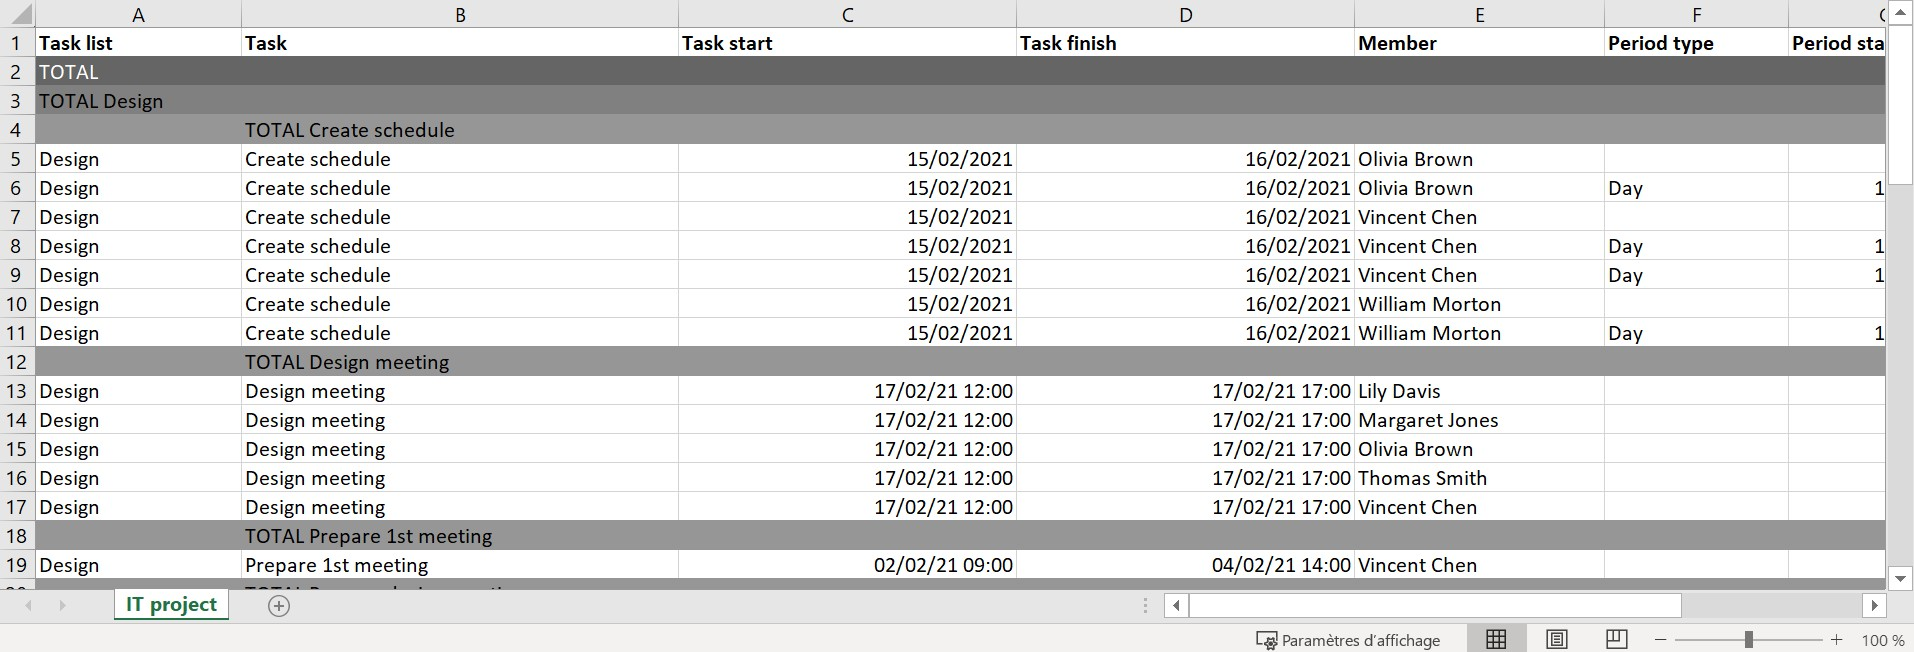 Export your project as an Excel file.